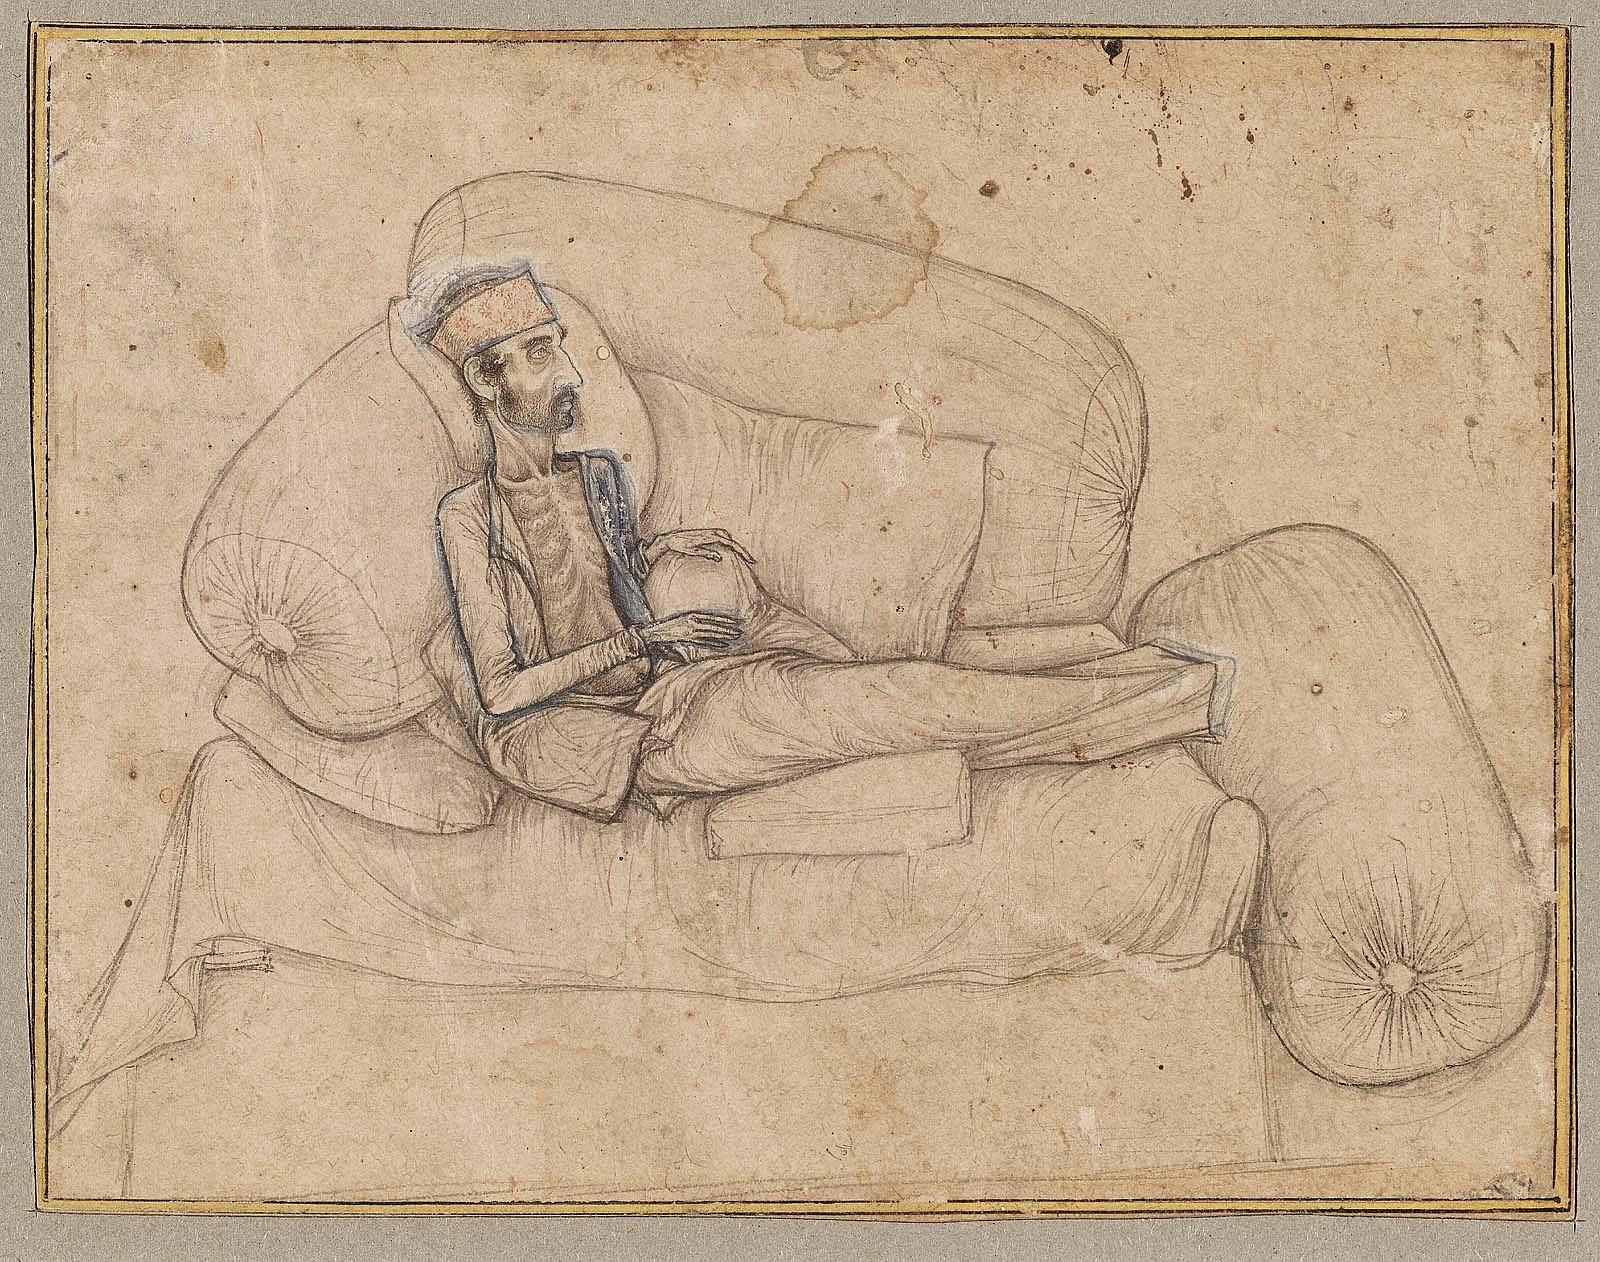 Dying Inayat Khan, ca. 1618–19, by Balchand. Ink and light wash on paper, 10.3 × 13.3 cm. Museum of Fine Arts, Boston, Bartlett Collection—Museum purchase with funds from the Francis Bartlett Donation of 1912 and Picture Fund